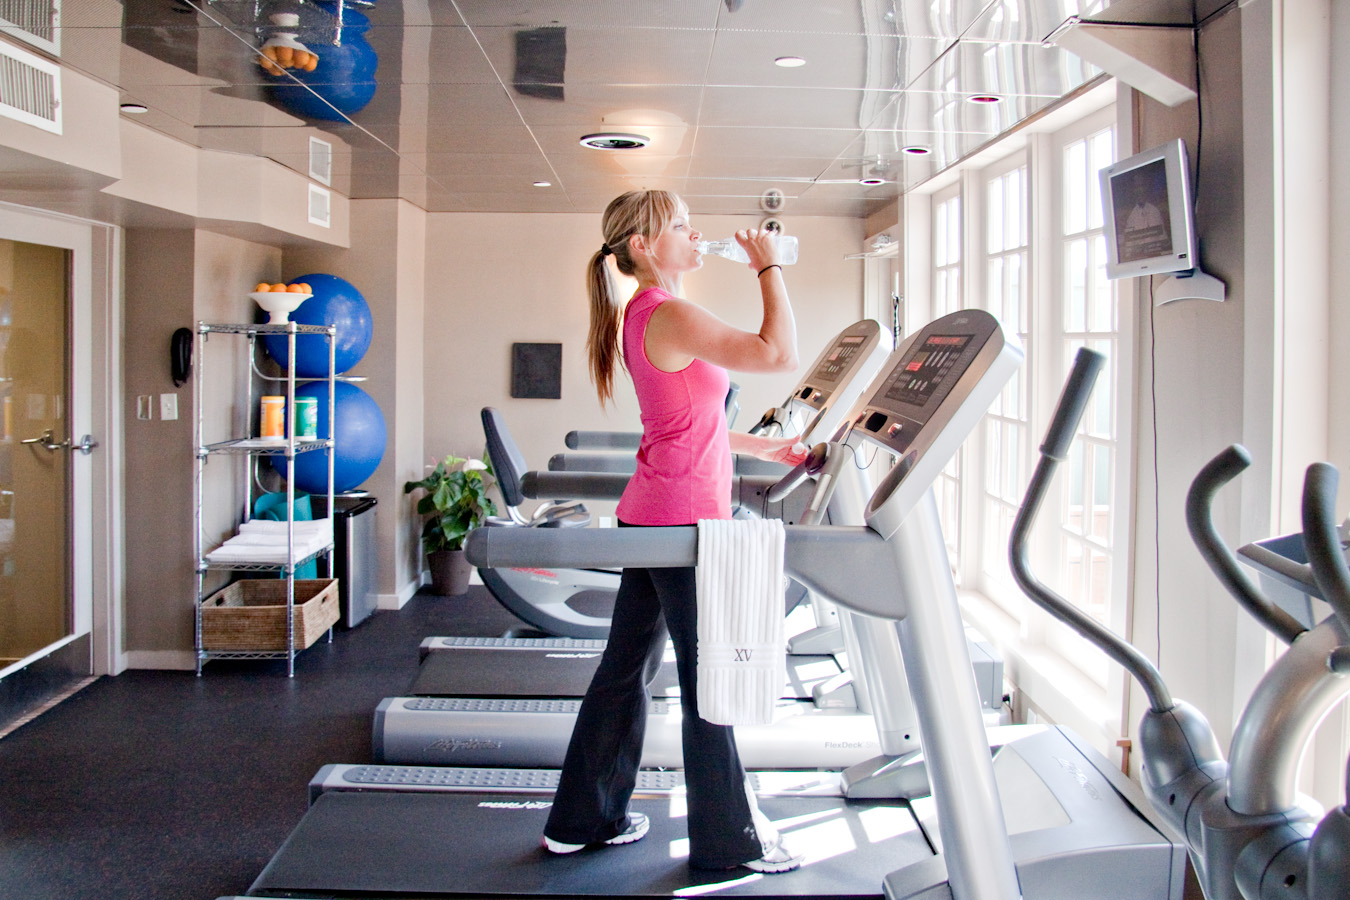 Photograph if a beautiful woman working out on our treadmil machine in our 24/7 fitness center.